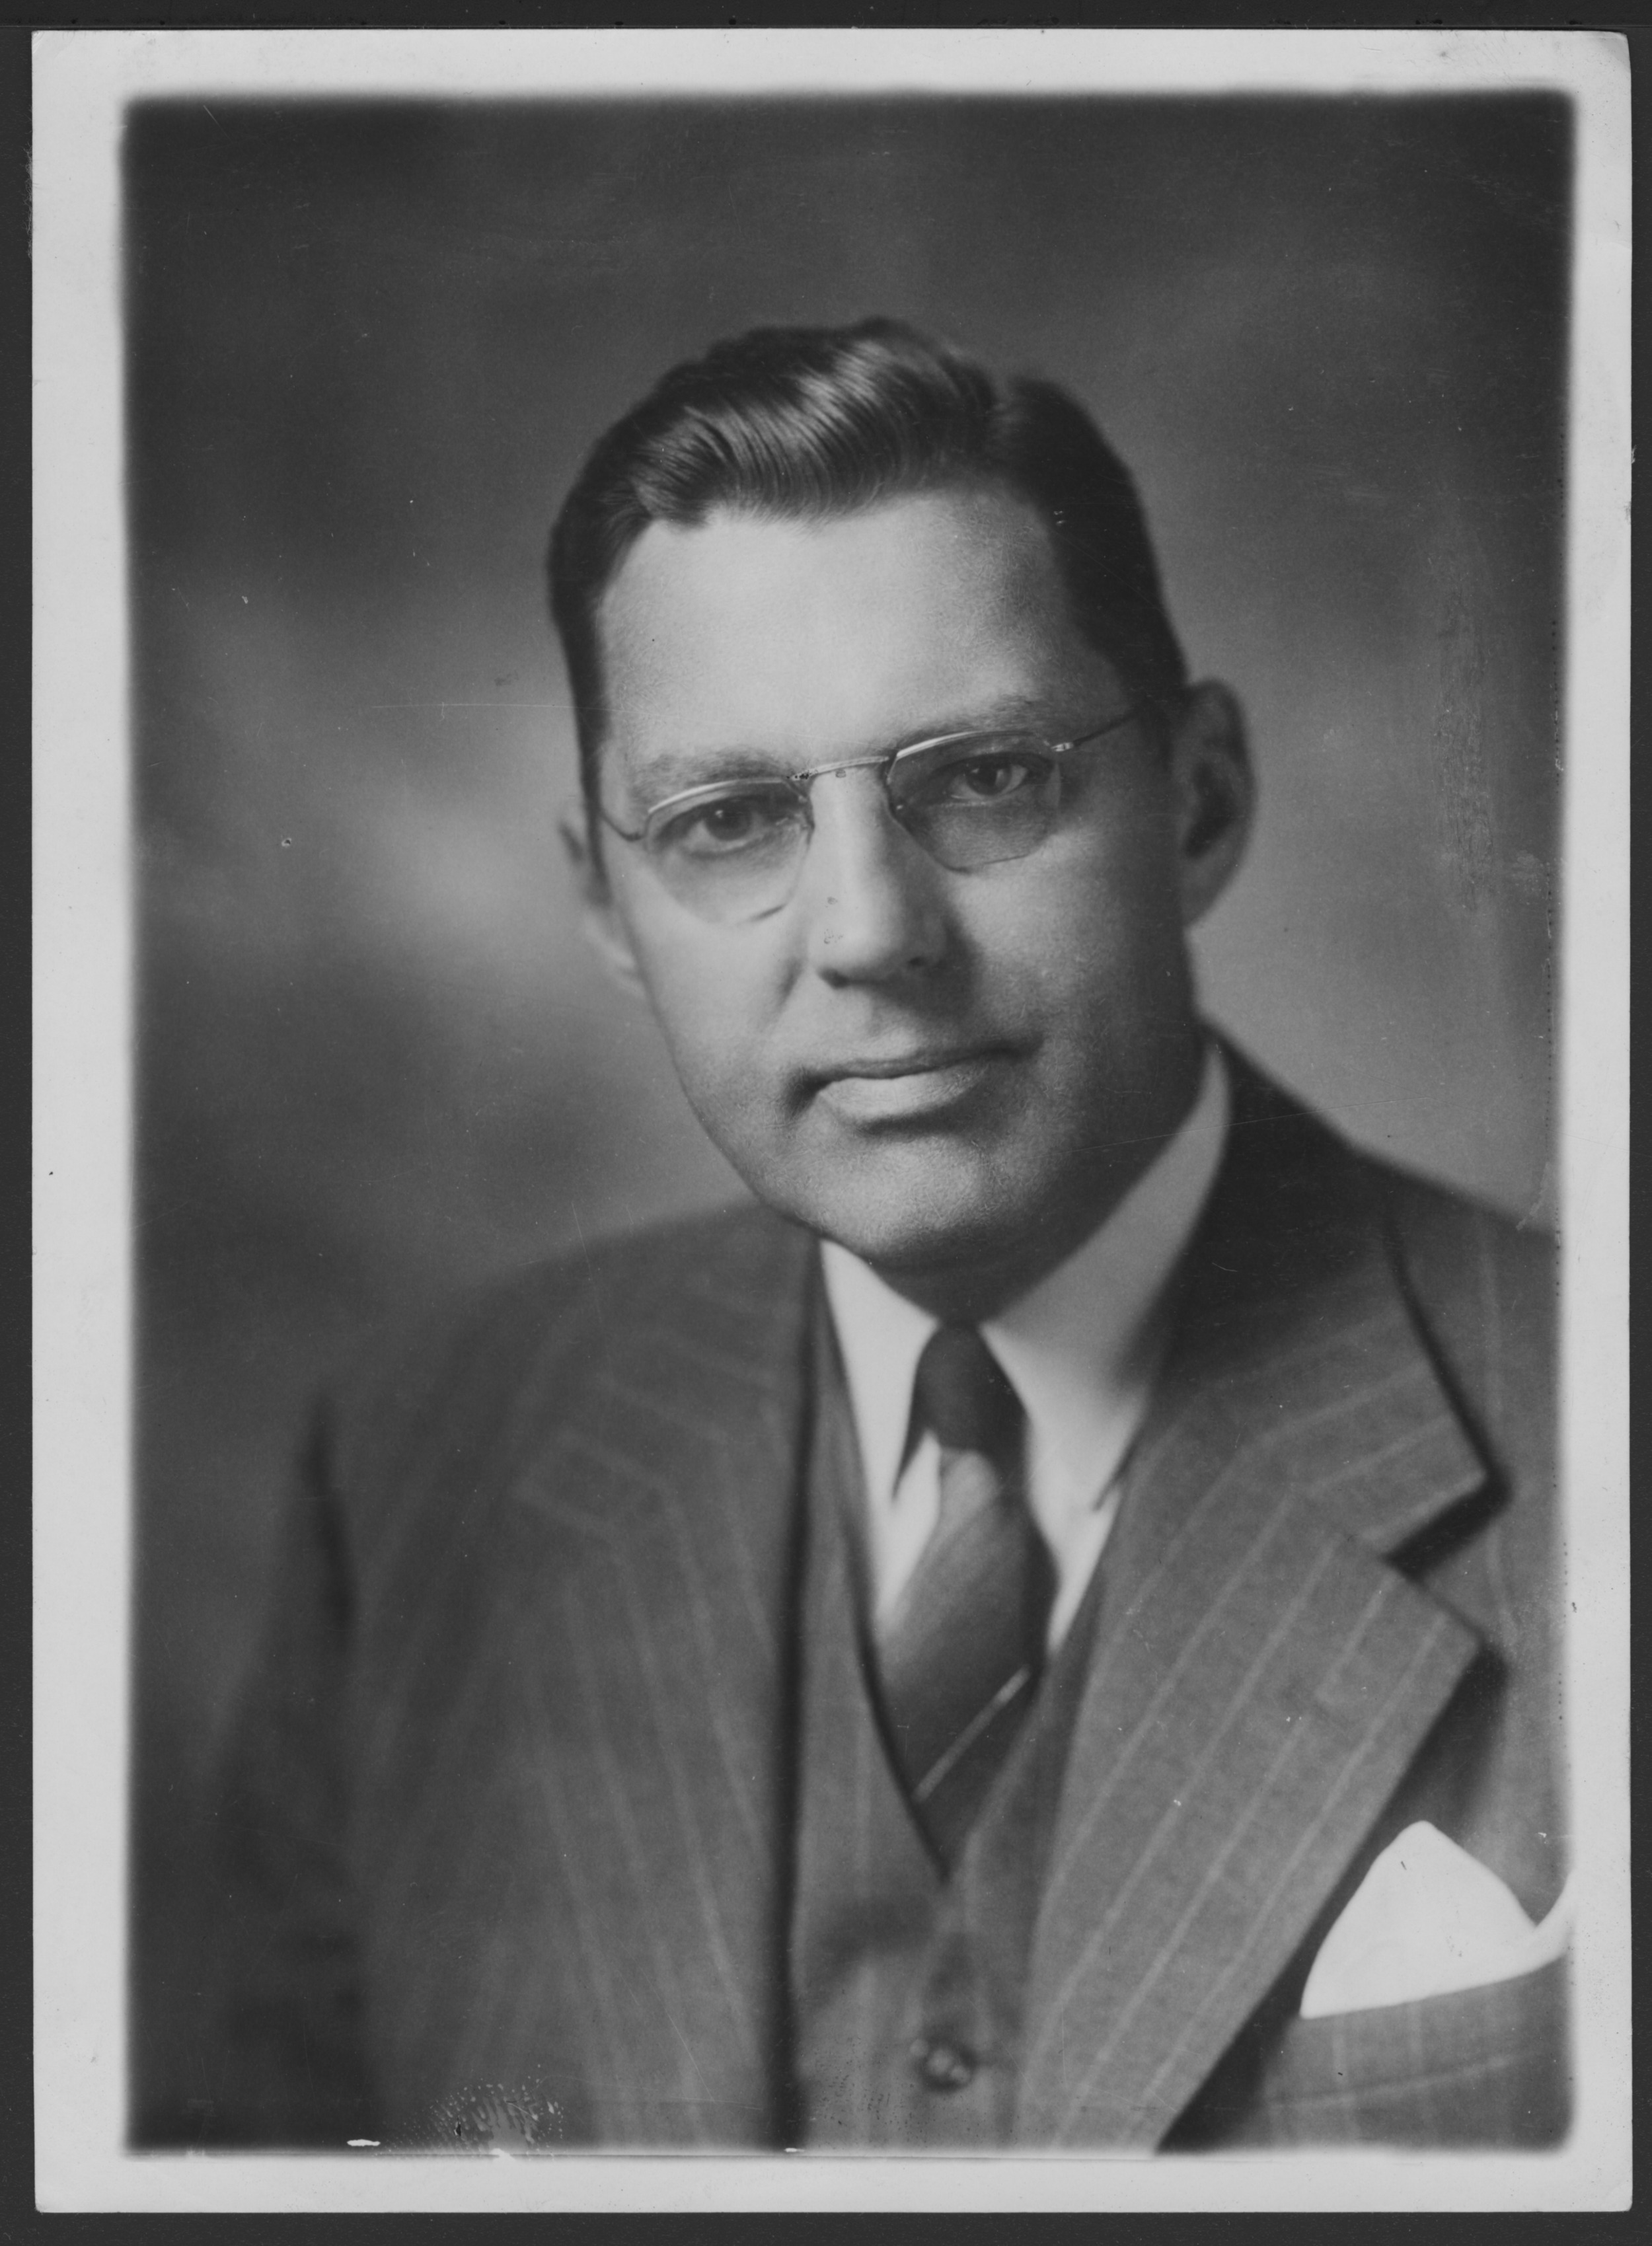 Menninger photograph collection - #1865 David Neiswanger (1892-1963).  Trustee and President and Vice-chairman of the TMF Board., 1947 portrait